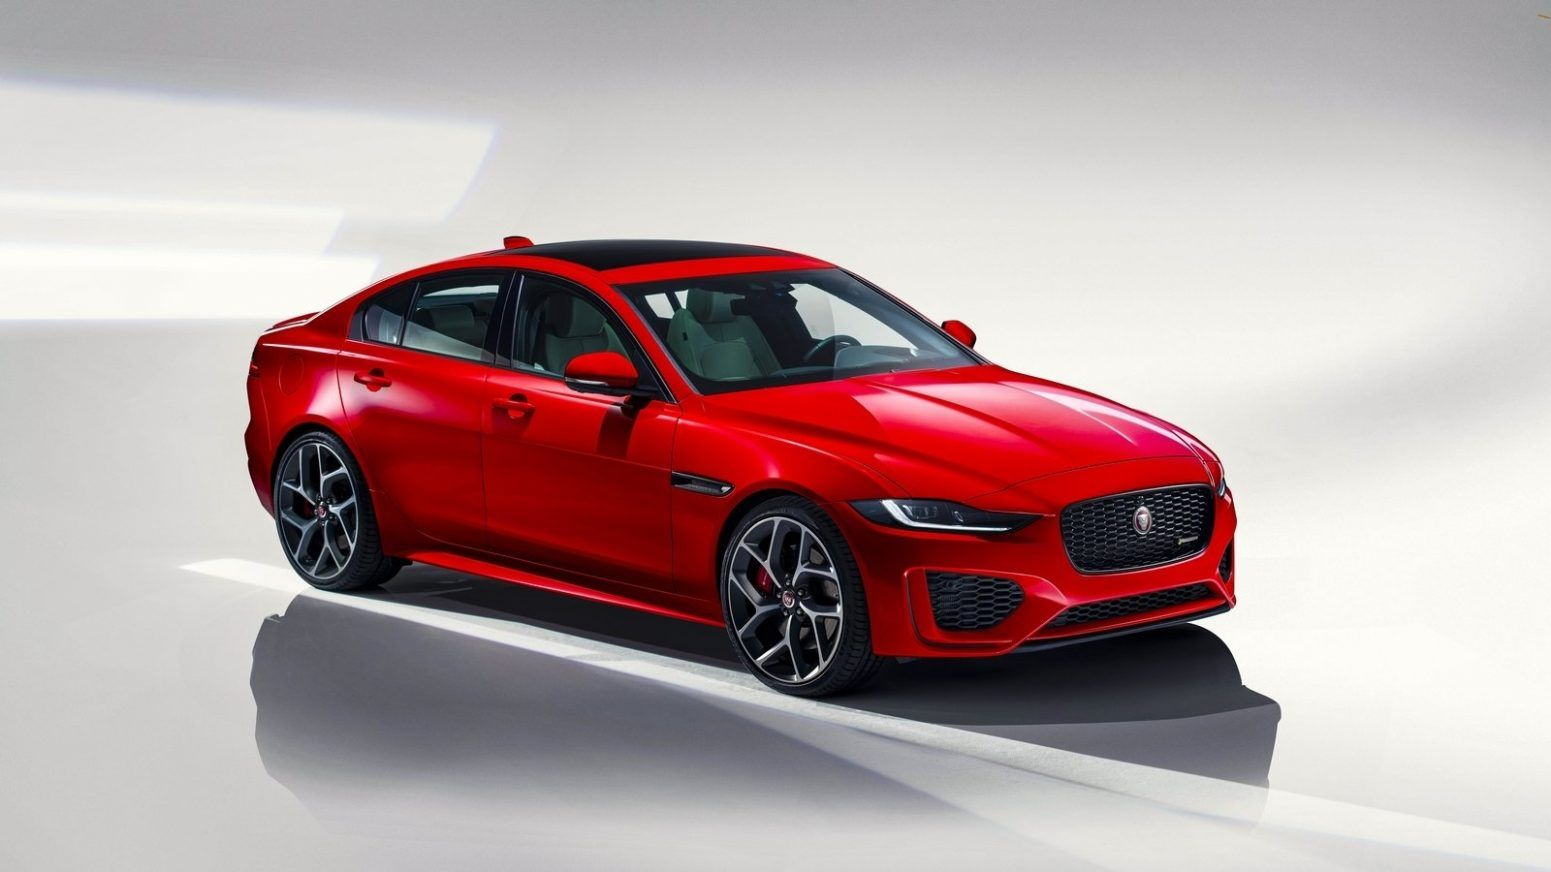 The New Jaguar Xe Provides A Boosted Exterior Style All New Elegant Interior And Advanced Technologies An Upgraded Exterior Sty Jaguar Xe Jaguar Price Jaguar